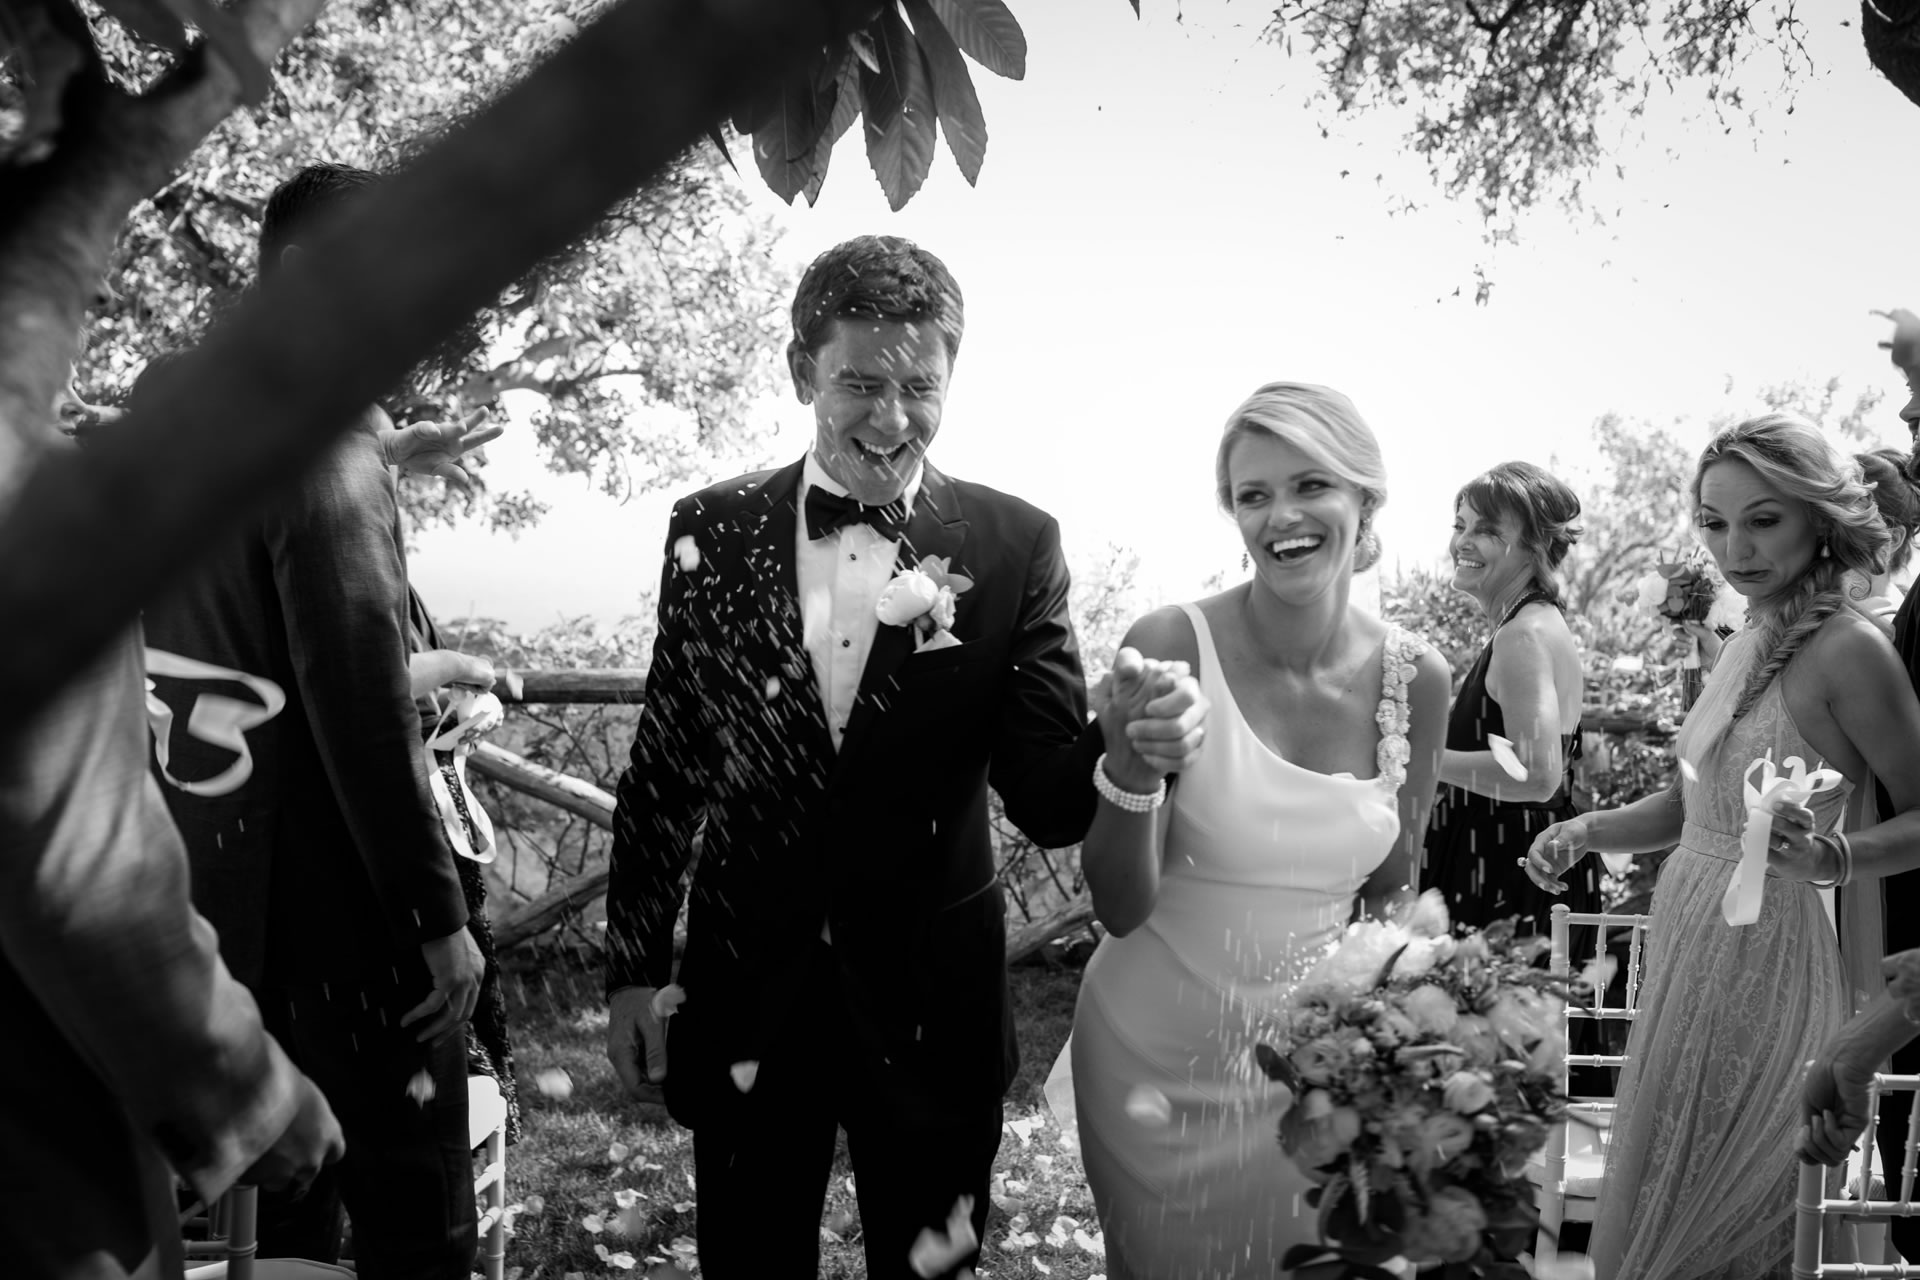 Petals - 29 :: Wedding in Positano. Sea and love :: Luxury wedding photography - 28 :: Petals - 29